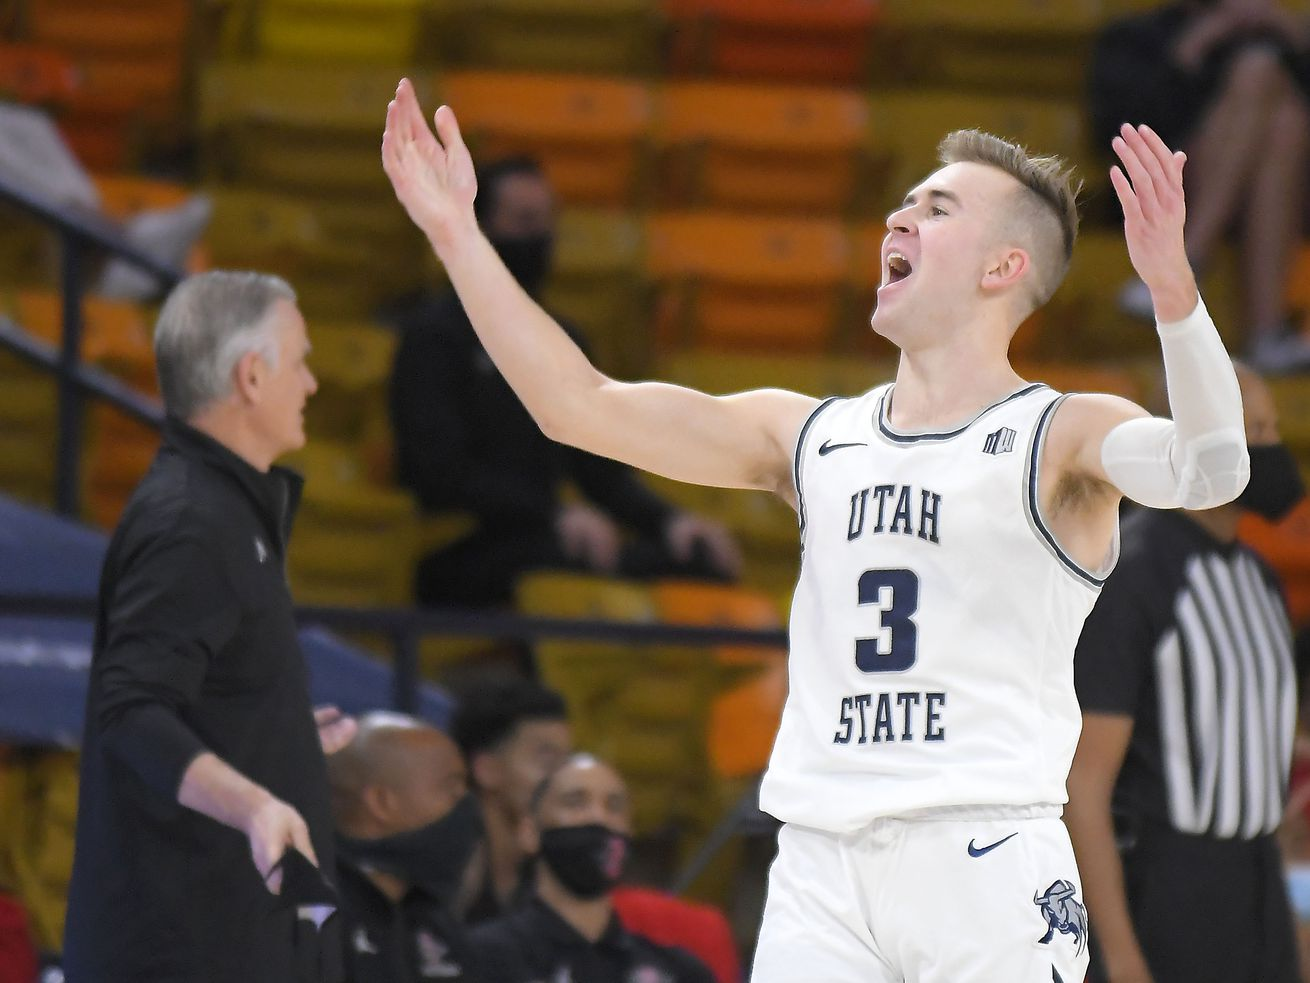 Utah State's 10th straight win — and second over San Diego State — shows off Aggies' resilience